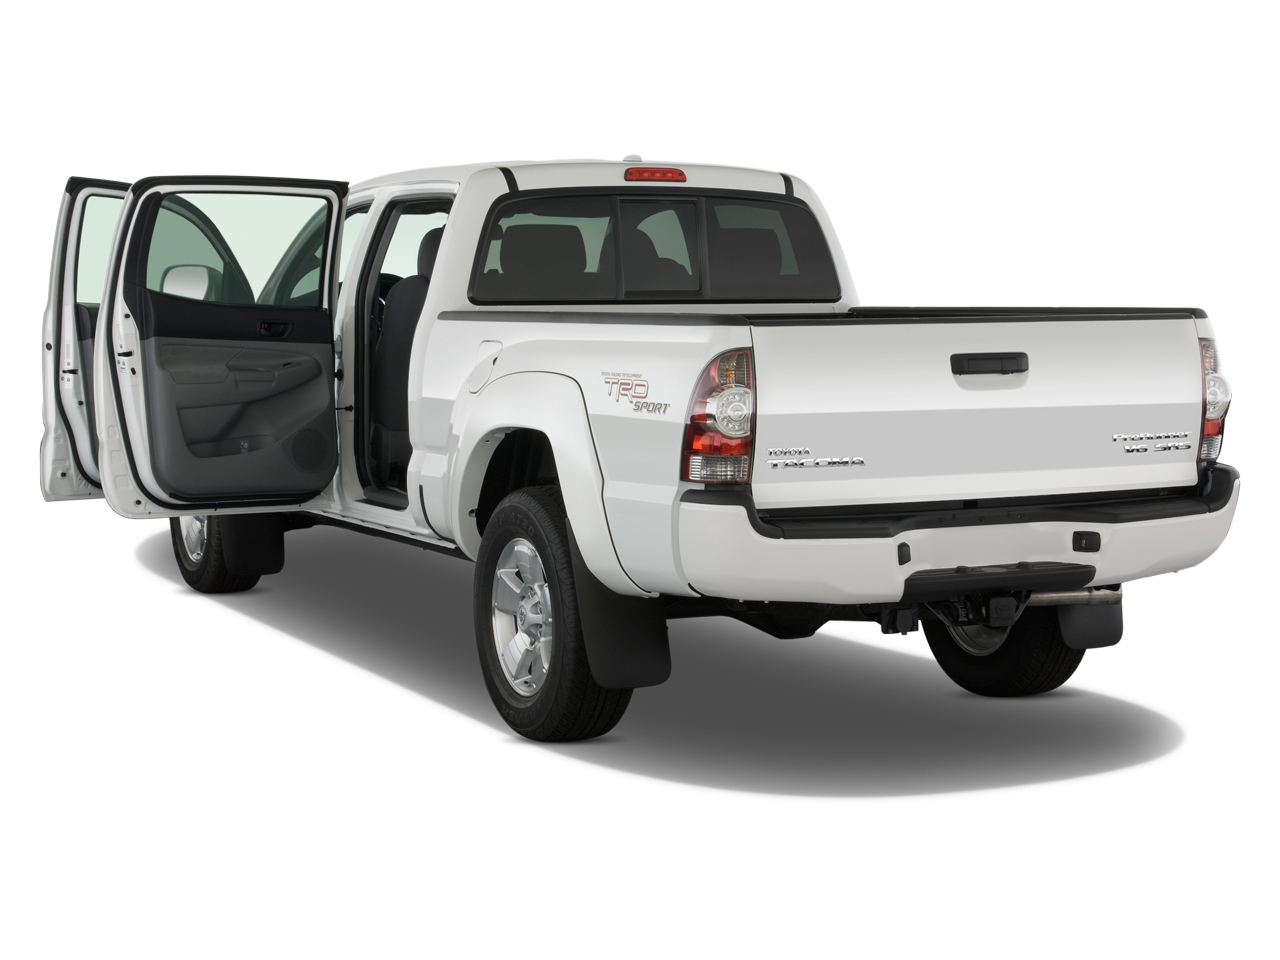 2015 toyota tacoma v6 4x4 towing and payload autos post. Black Bedroom Furniture Sets. Home Design Ideas